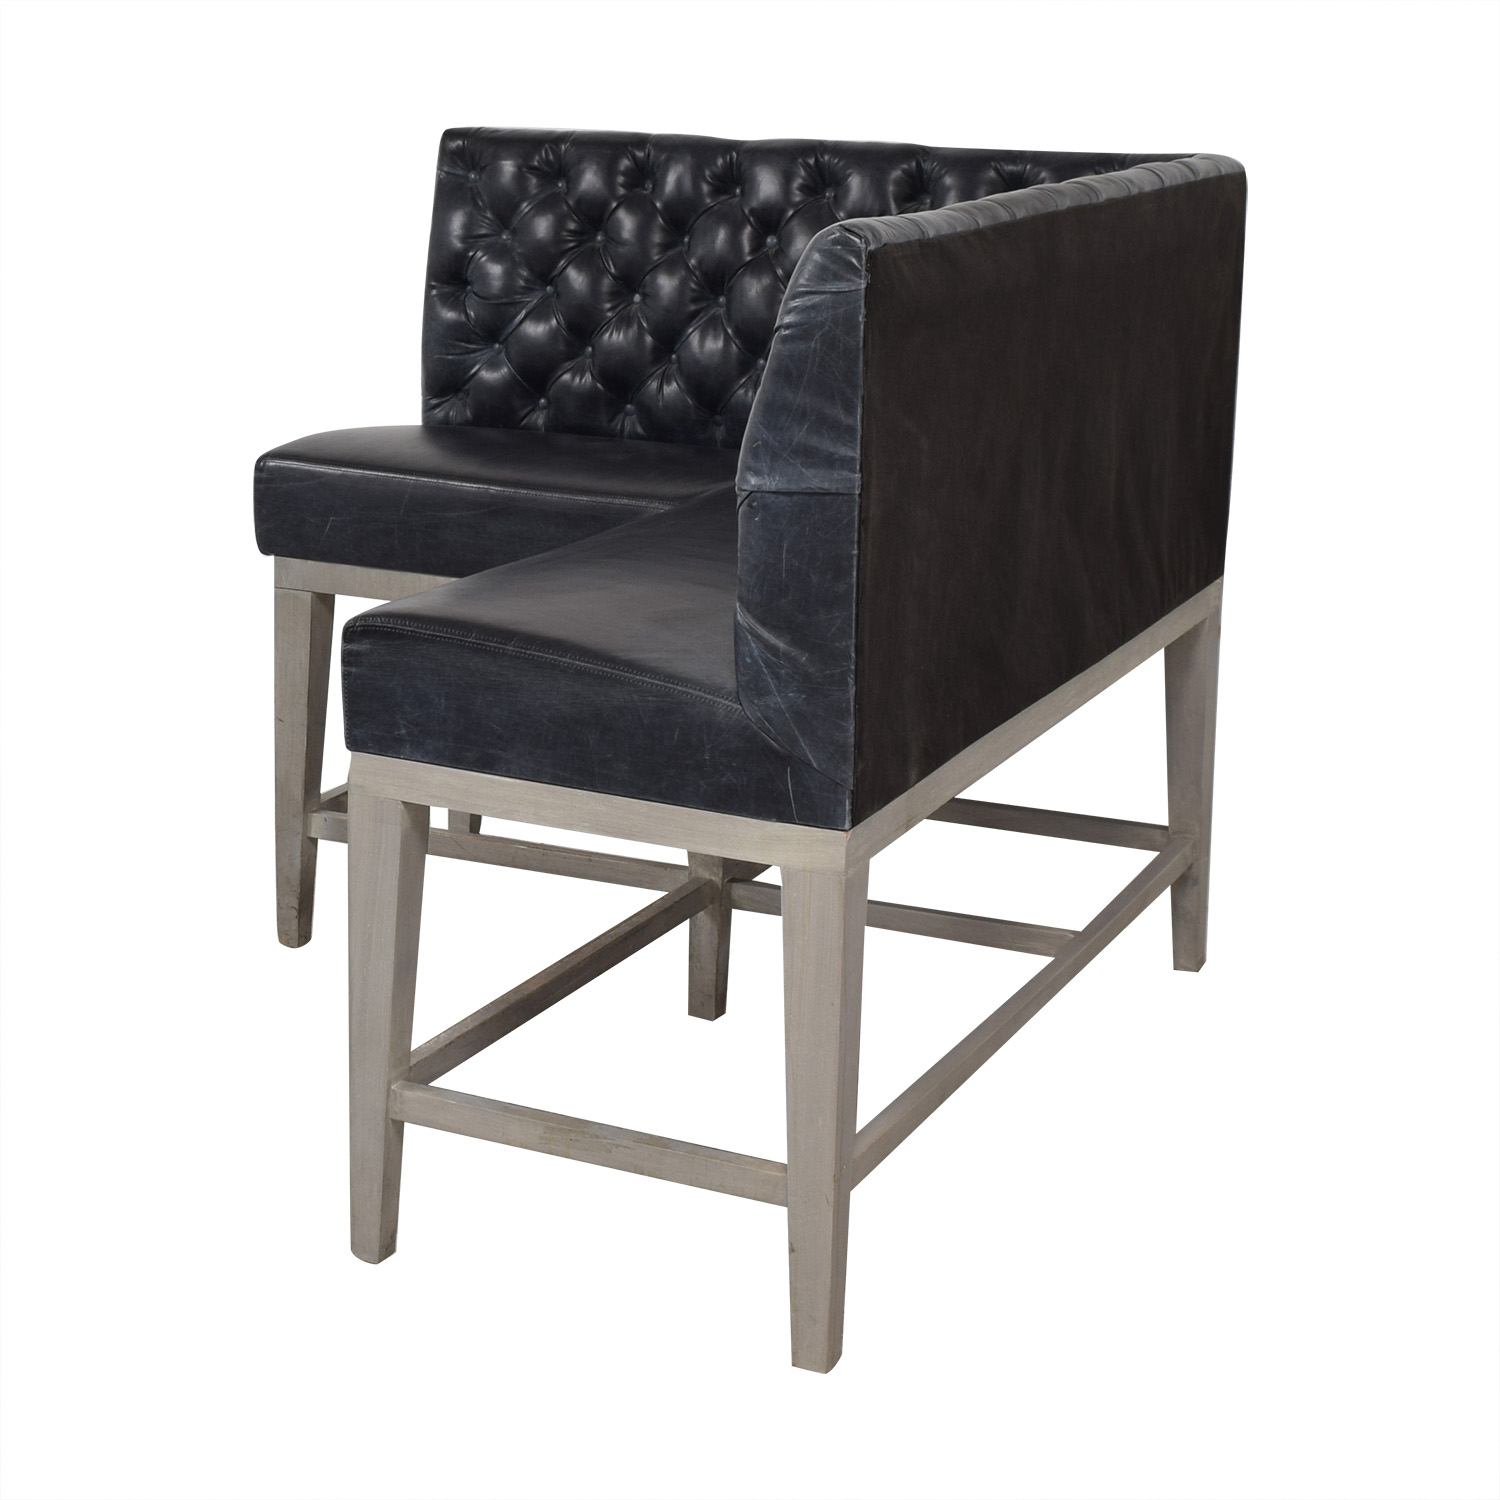 Black Tufted L-Shaped High Sofa second hand